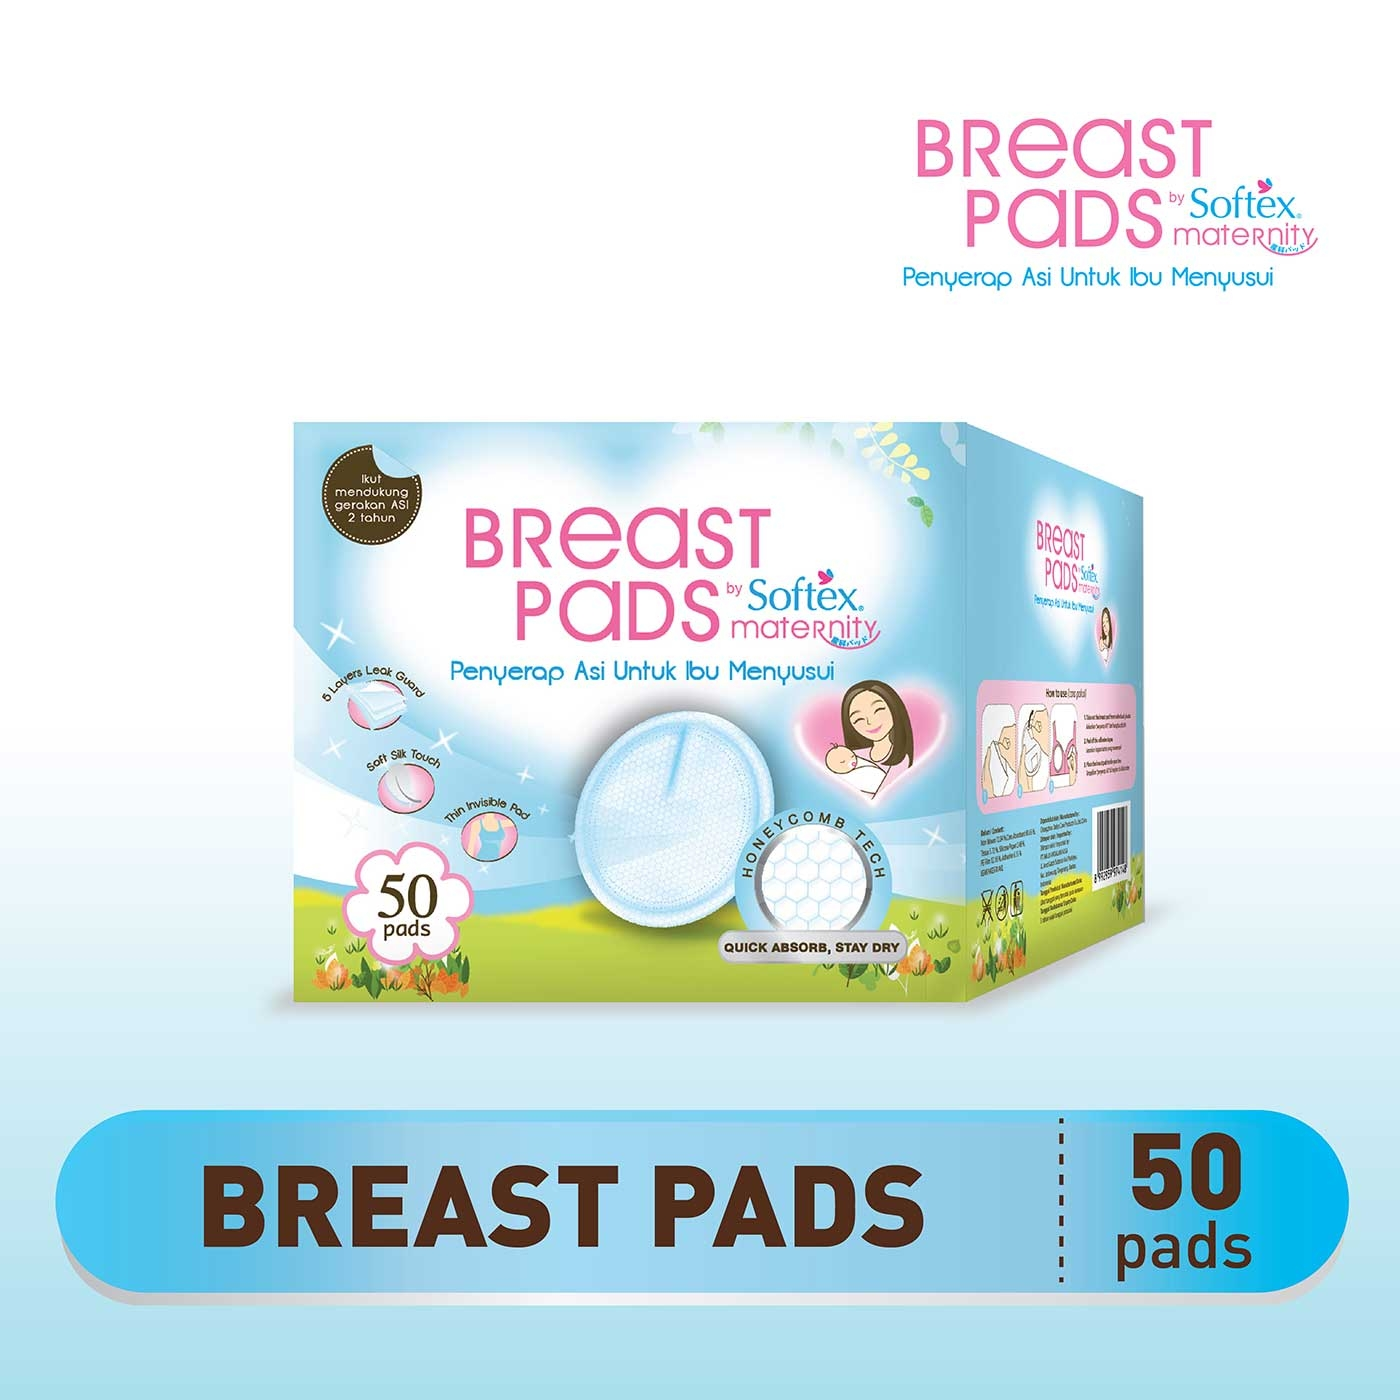 Breast Pads by Softex Maternity